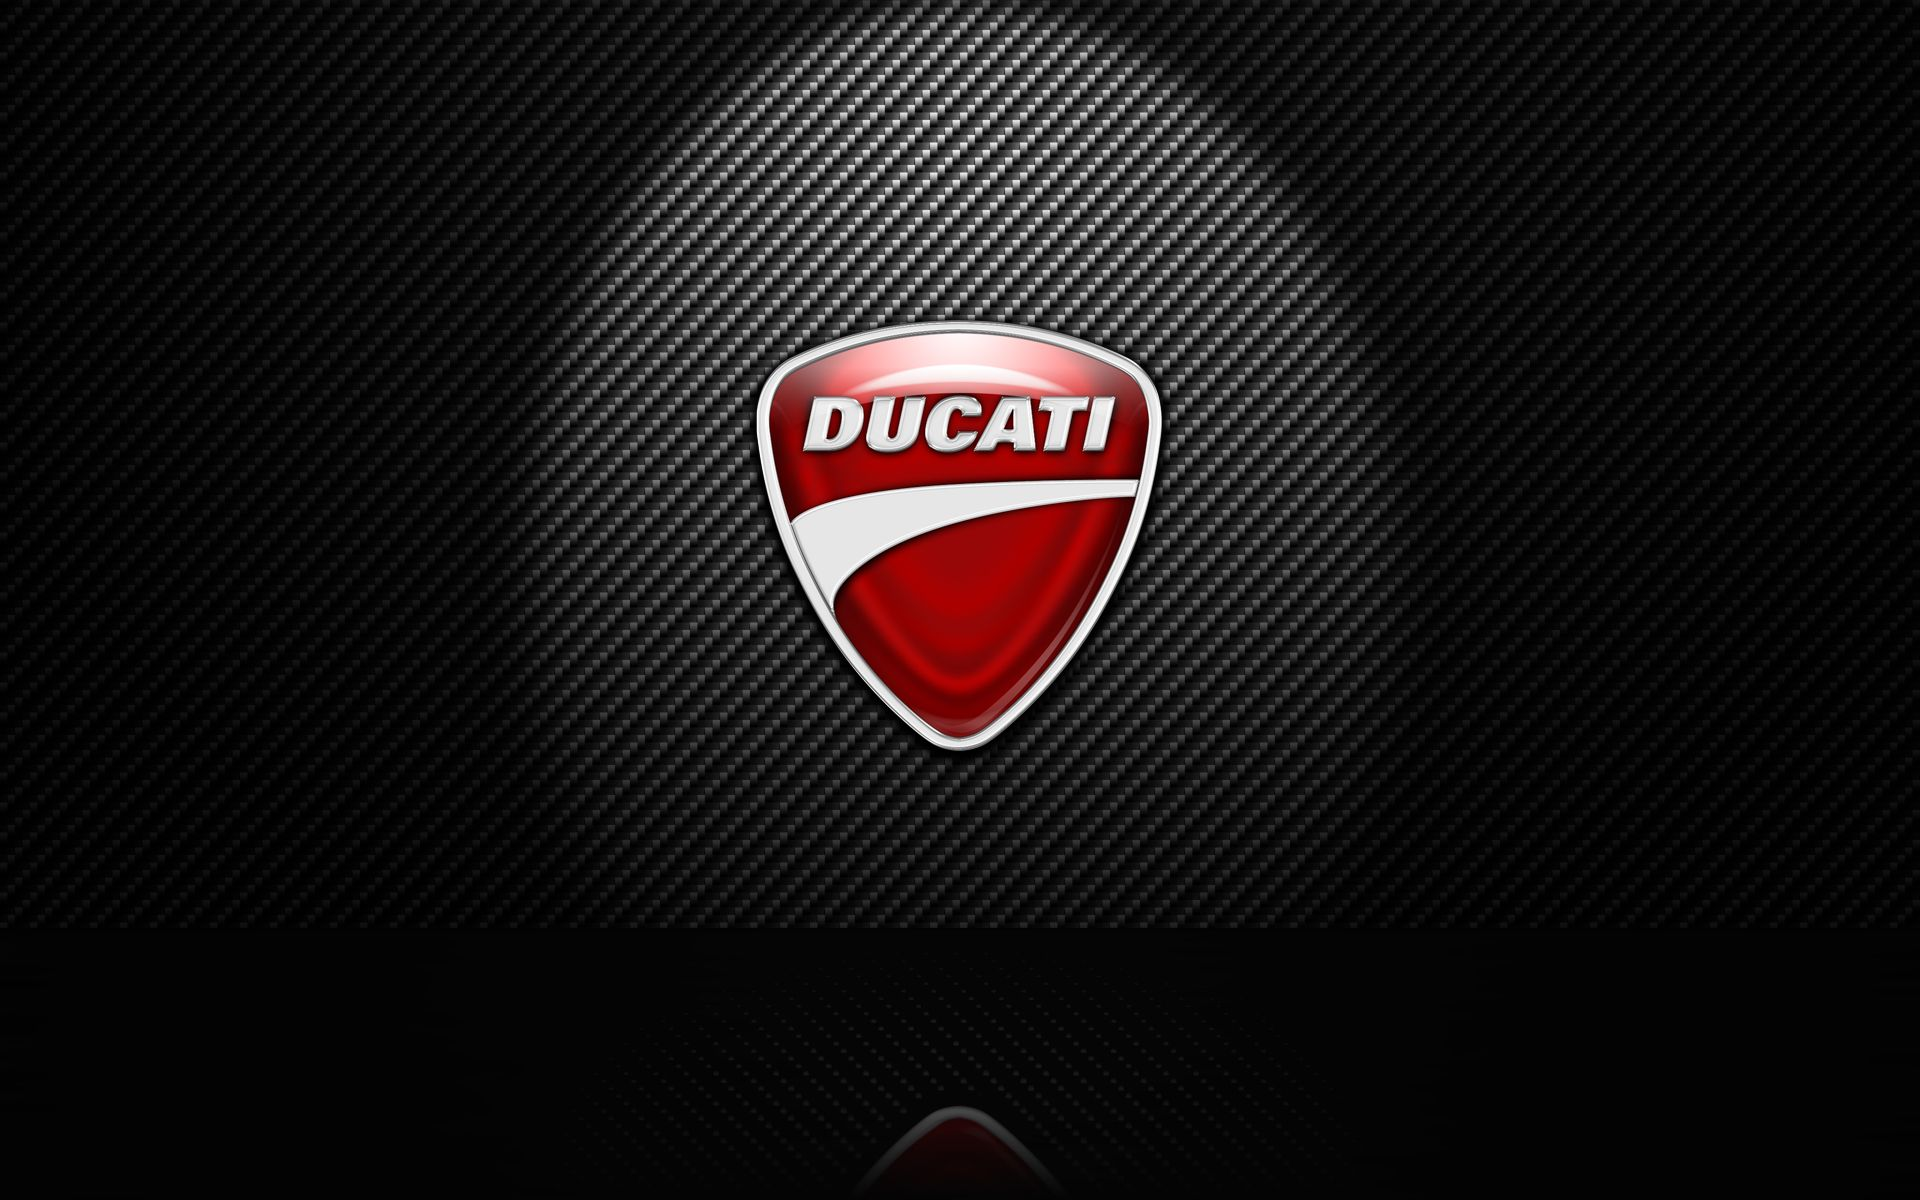 Ducati HD Wallpapers Backgrounds Wallpaper 1920×1080 ...